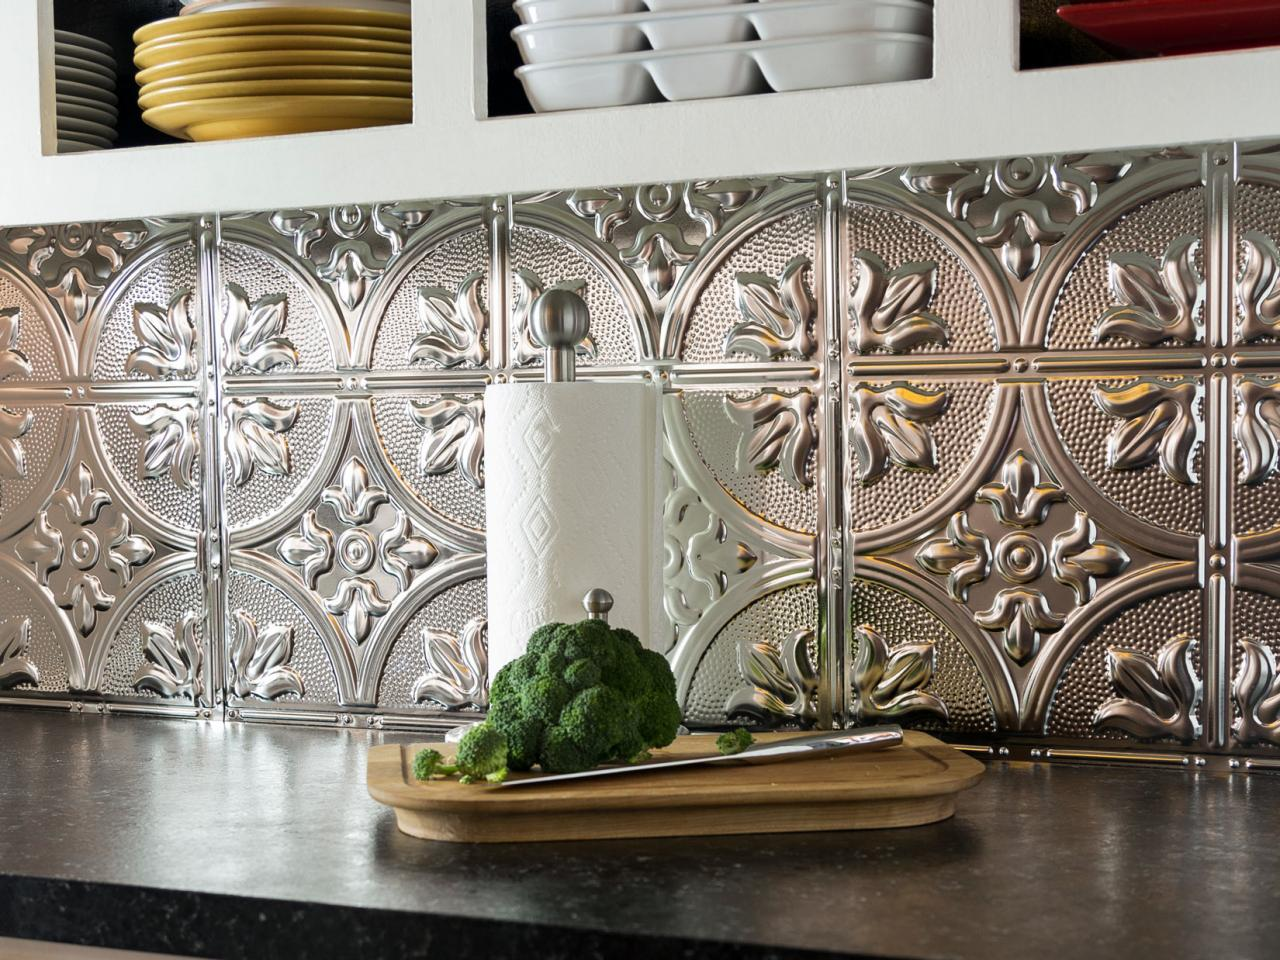 Photo by: Sam Henderson - How To Install A Tin Tile Backsplash How-tos DIY